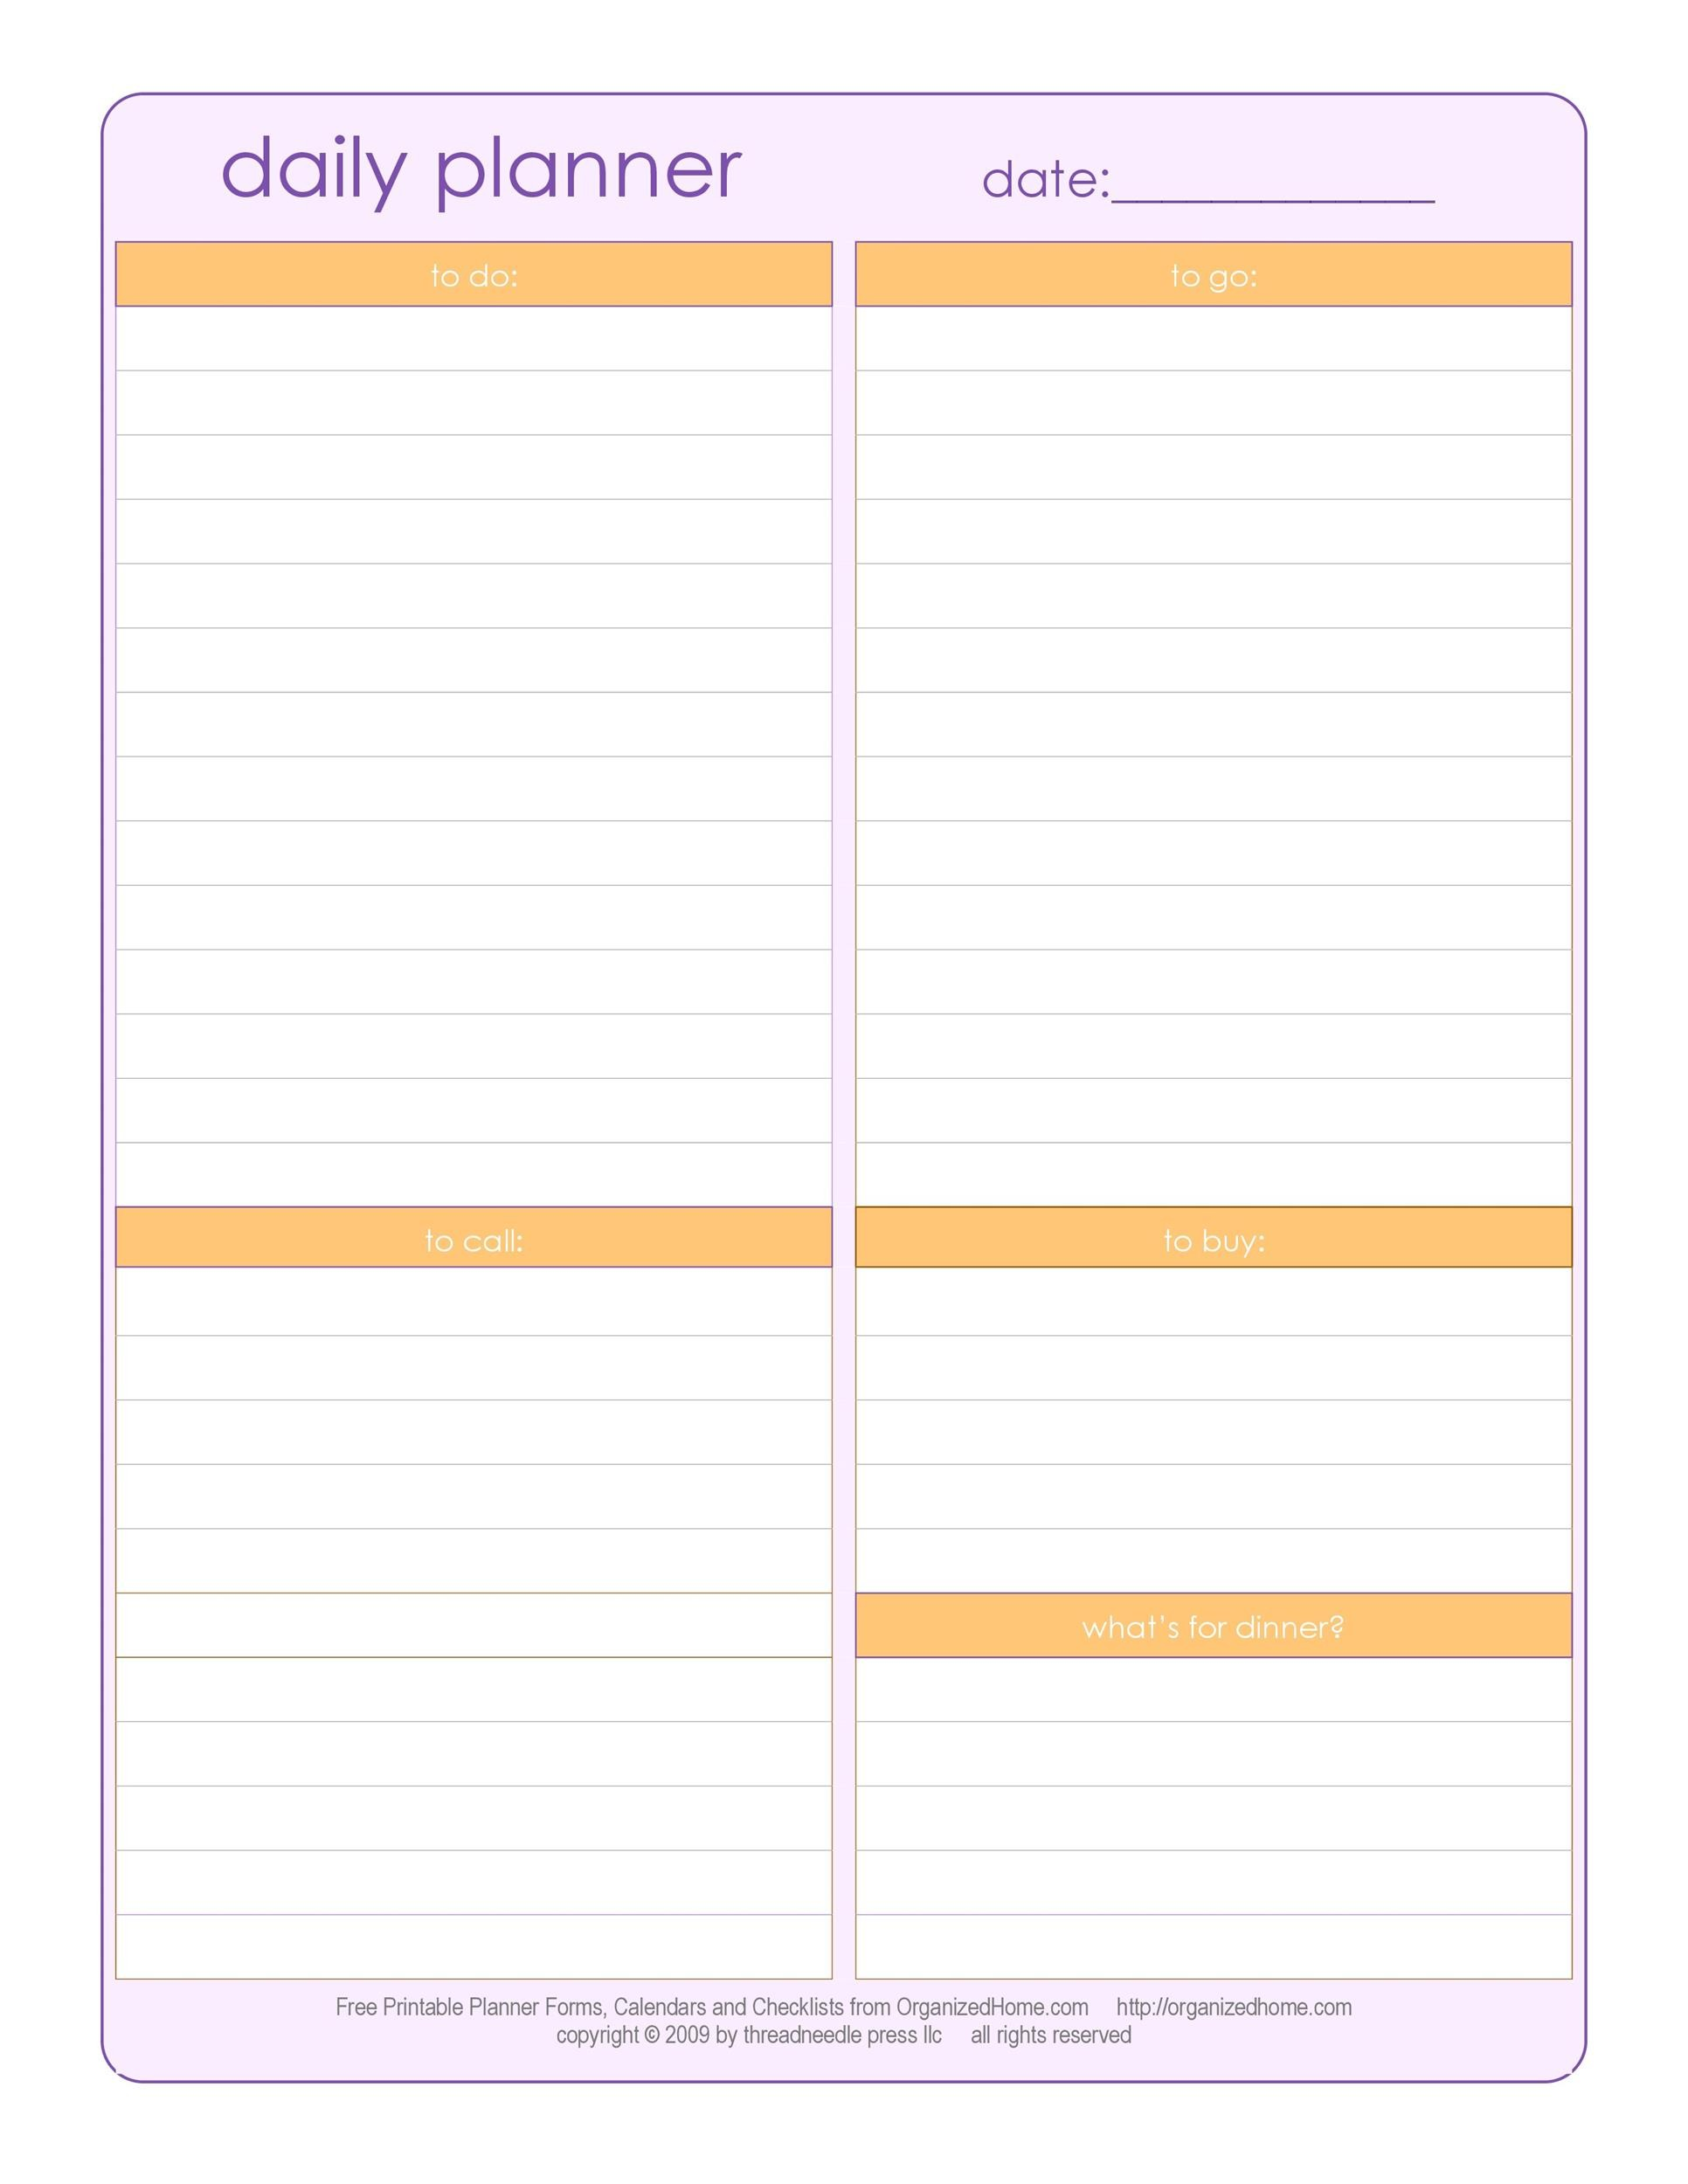 40 Printable Daily Planner Templates Free ᐅ Template Lab